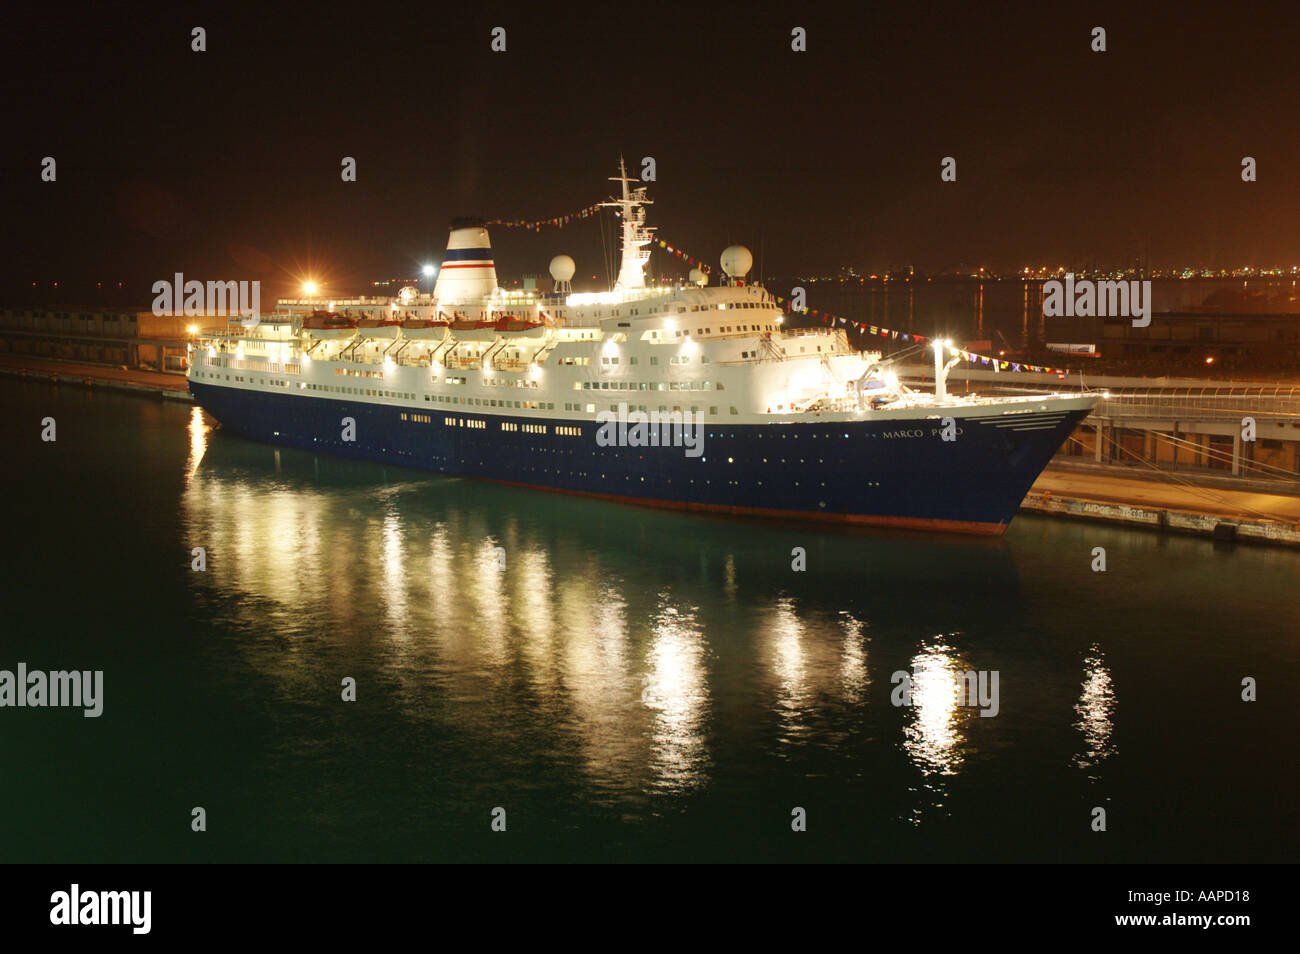 Cruise ship Marco Polo by night in Venice. Marco Polo is a former Soviet icebreaker, rebuilt in 1993. - Stock Image